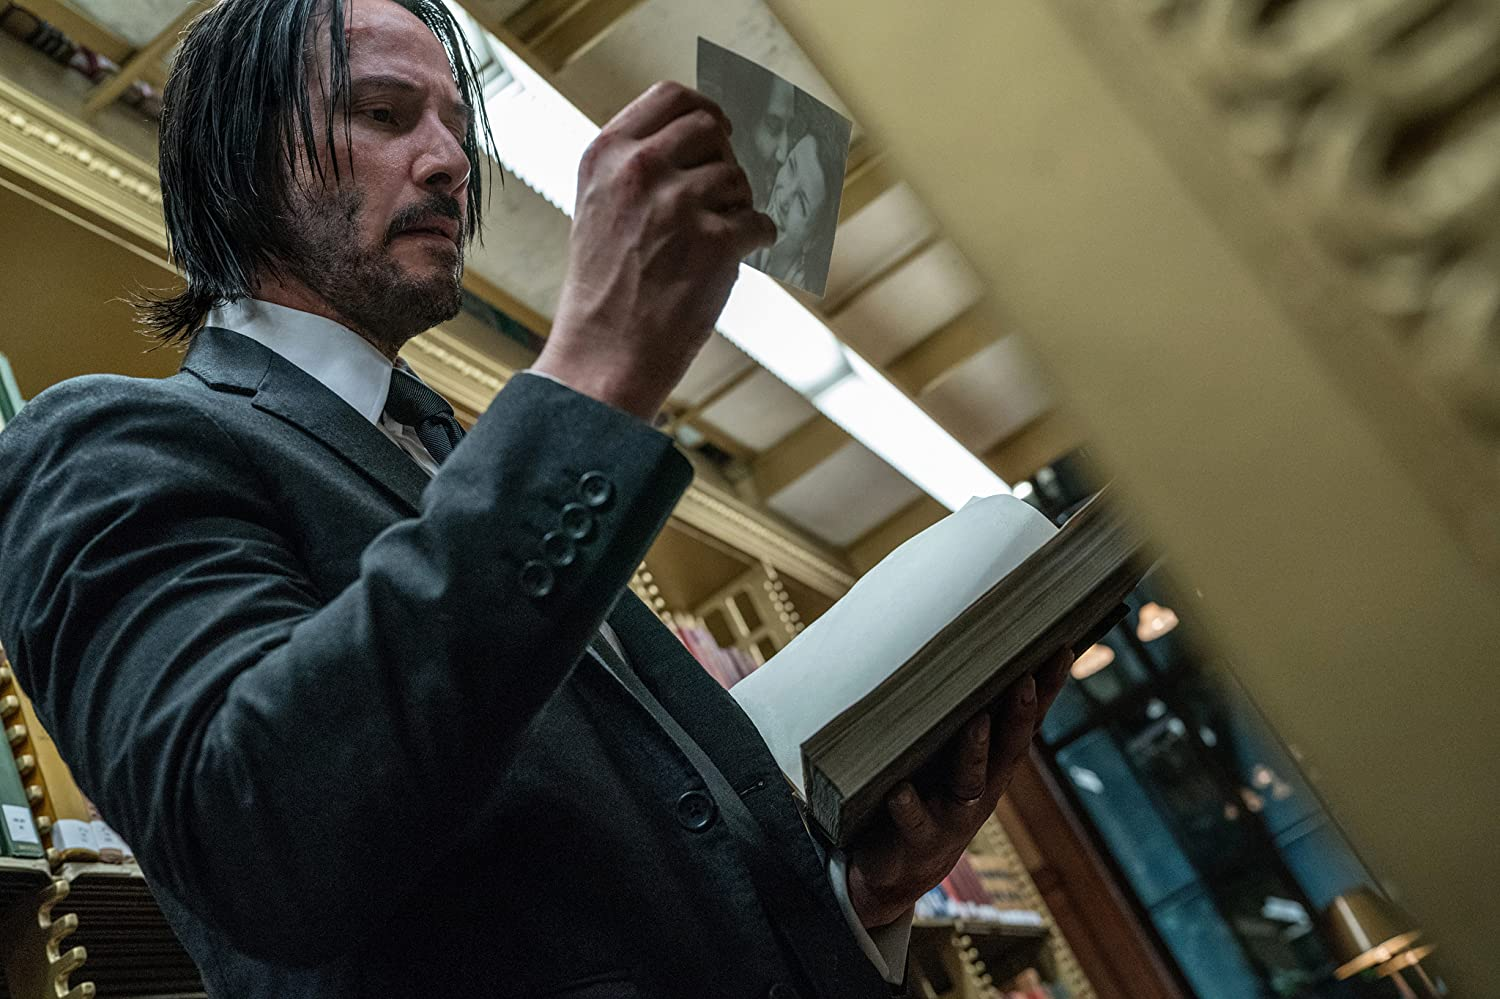 Keanu Reeves / John Wick: Chapter 3 - Parabellum / Lionsgate. © 2019. All rights reserved.